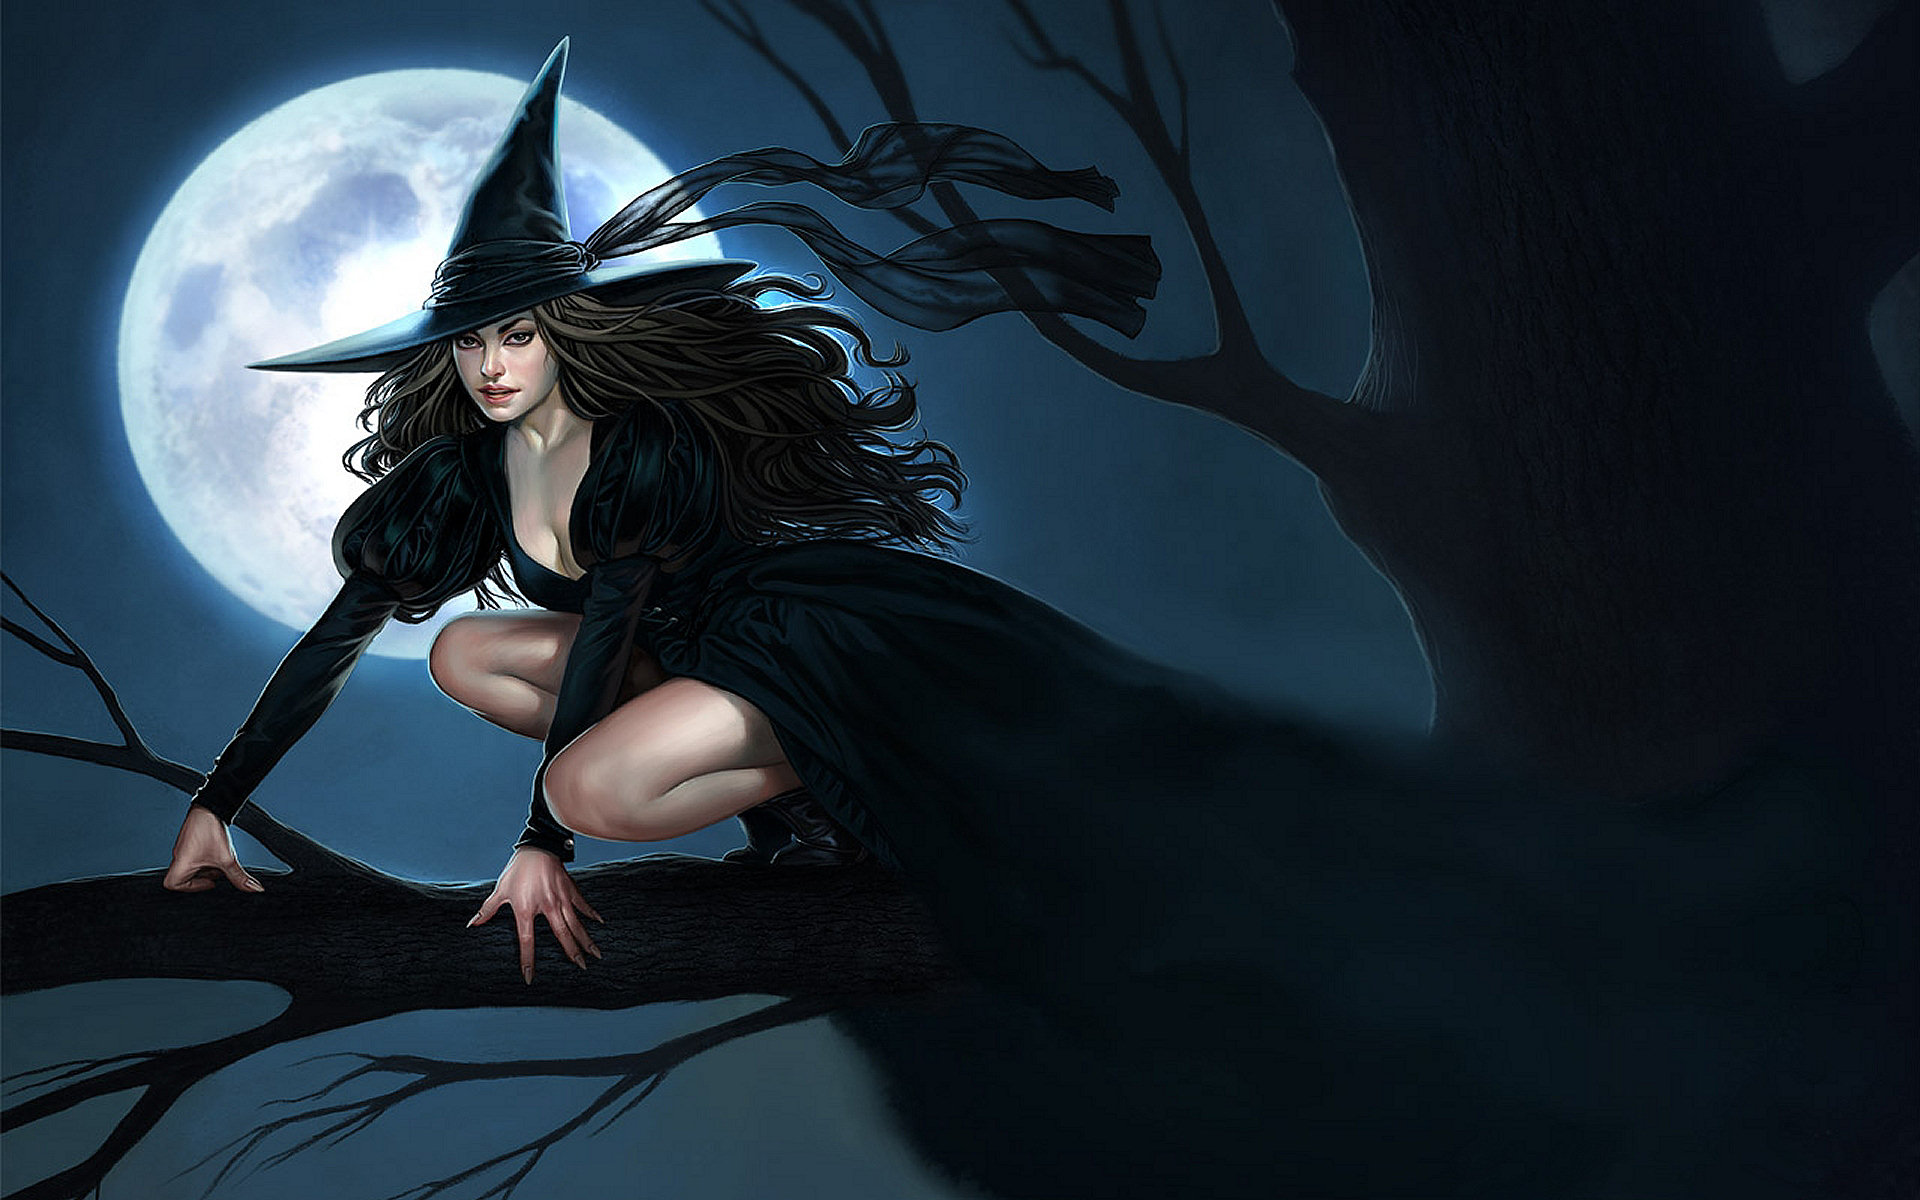 Witch Computer Wallpapers Desktop Backgrounds 1920x1200 ID194989 1920x1200